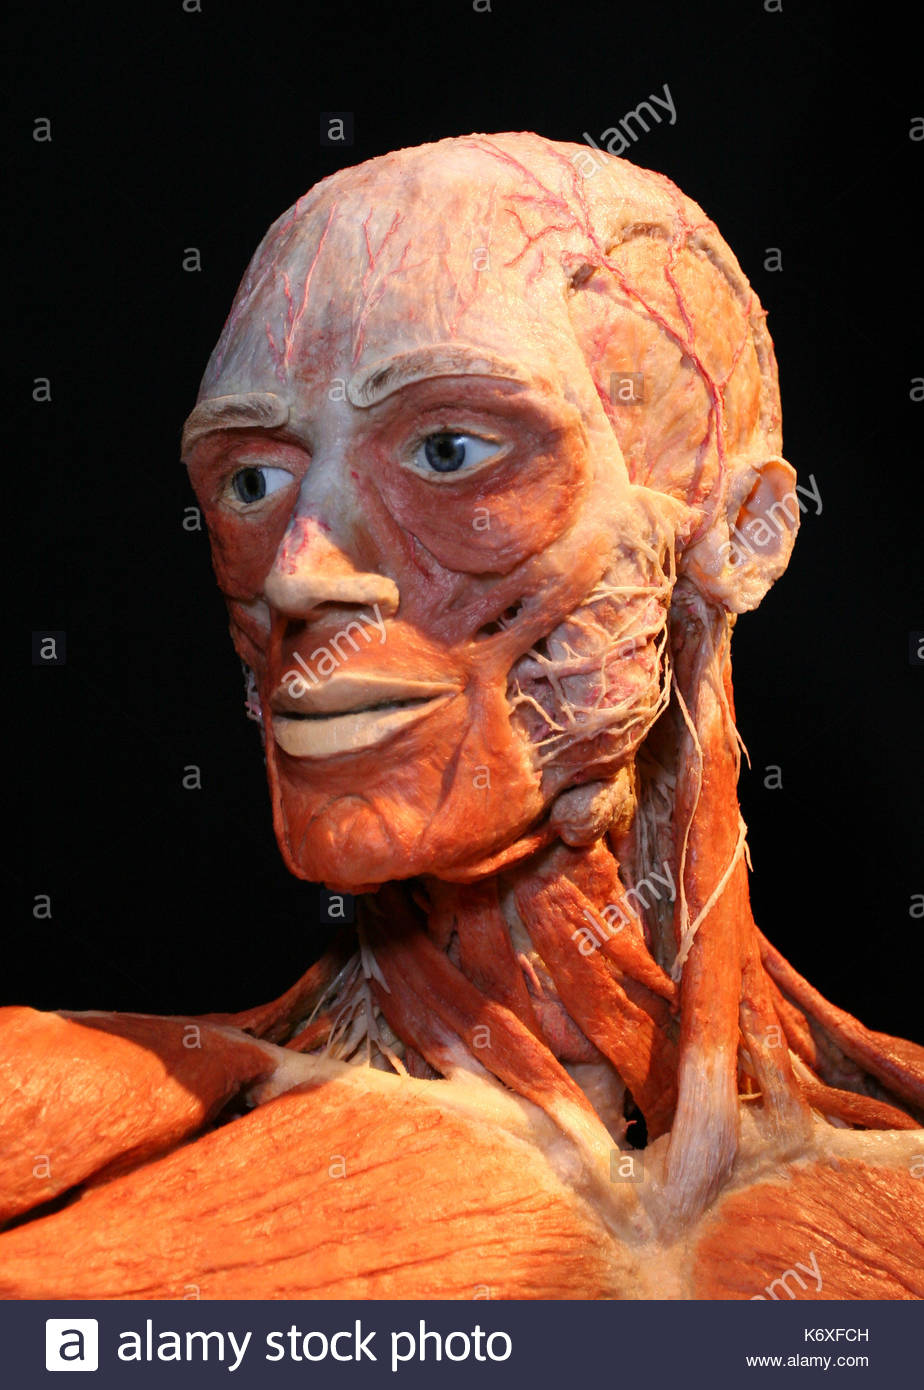 Body statue. Dr Gunther von Hagens, the famous anatomist, introduces ...